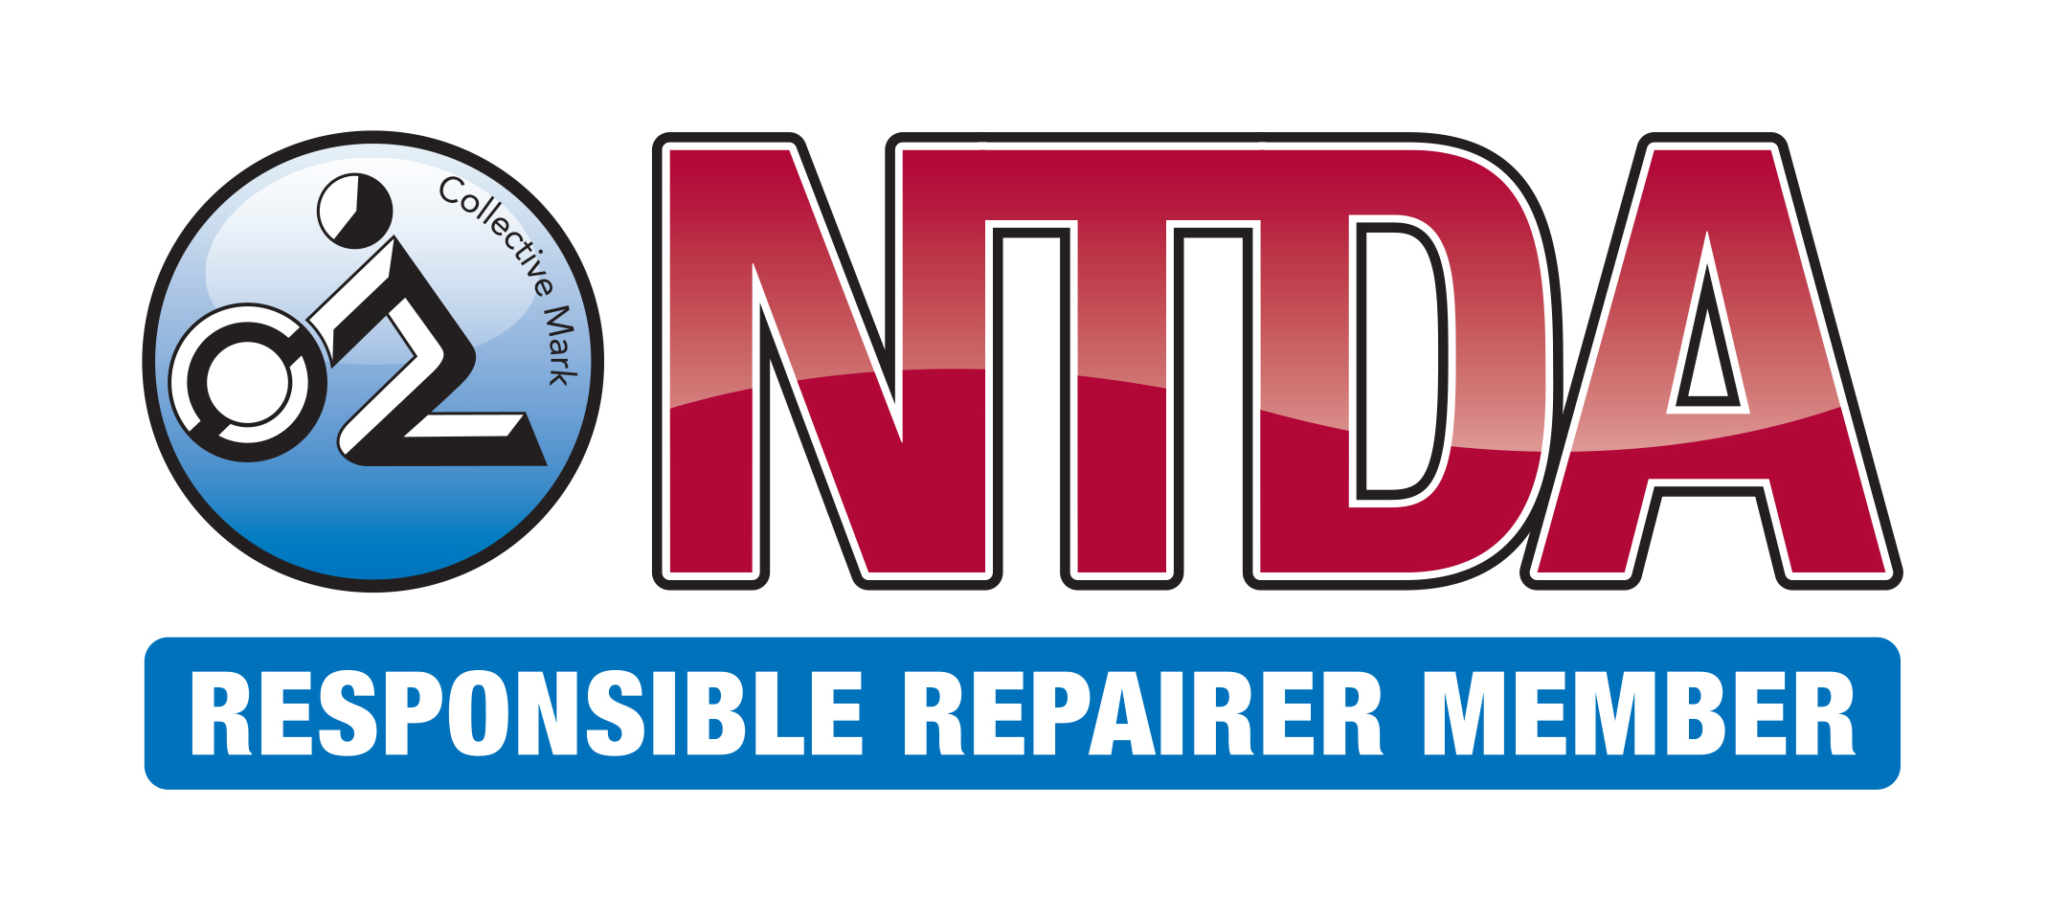 Responsible Repairer Group attracts new members to NTDA